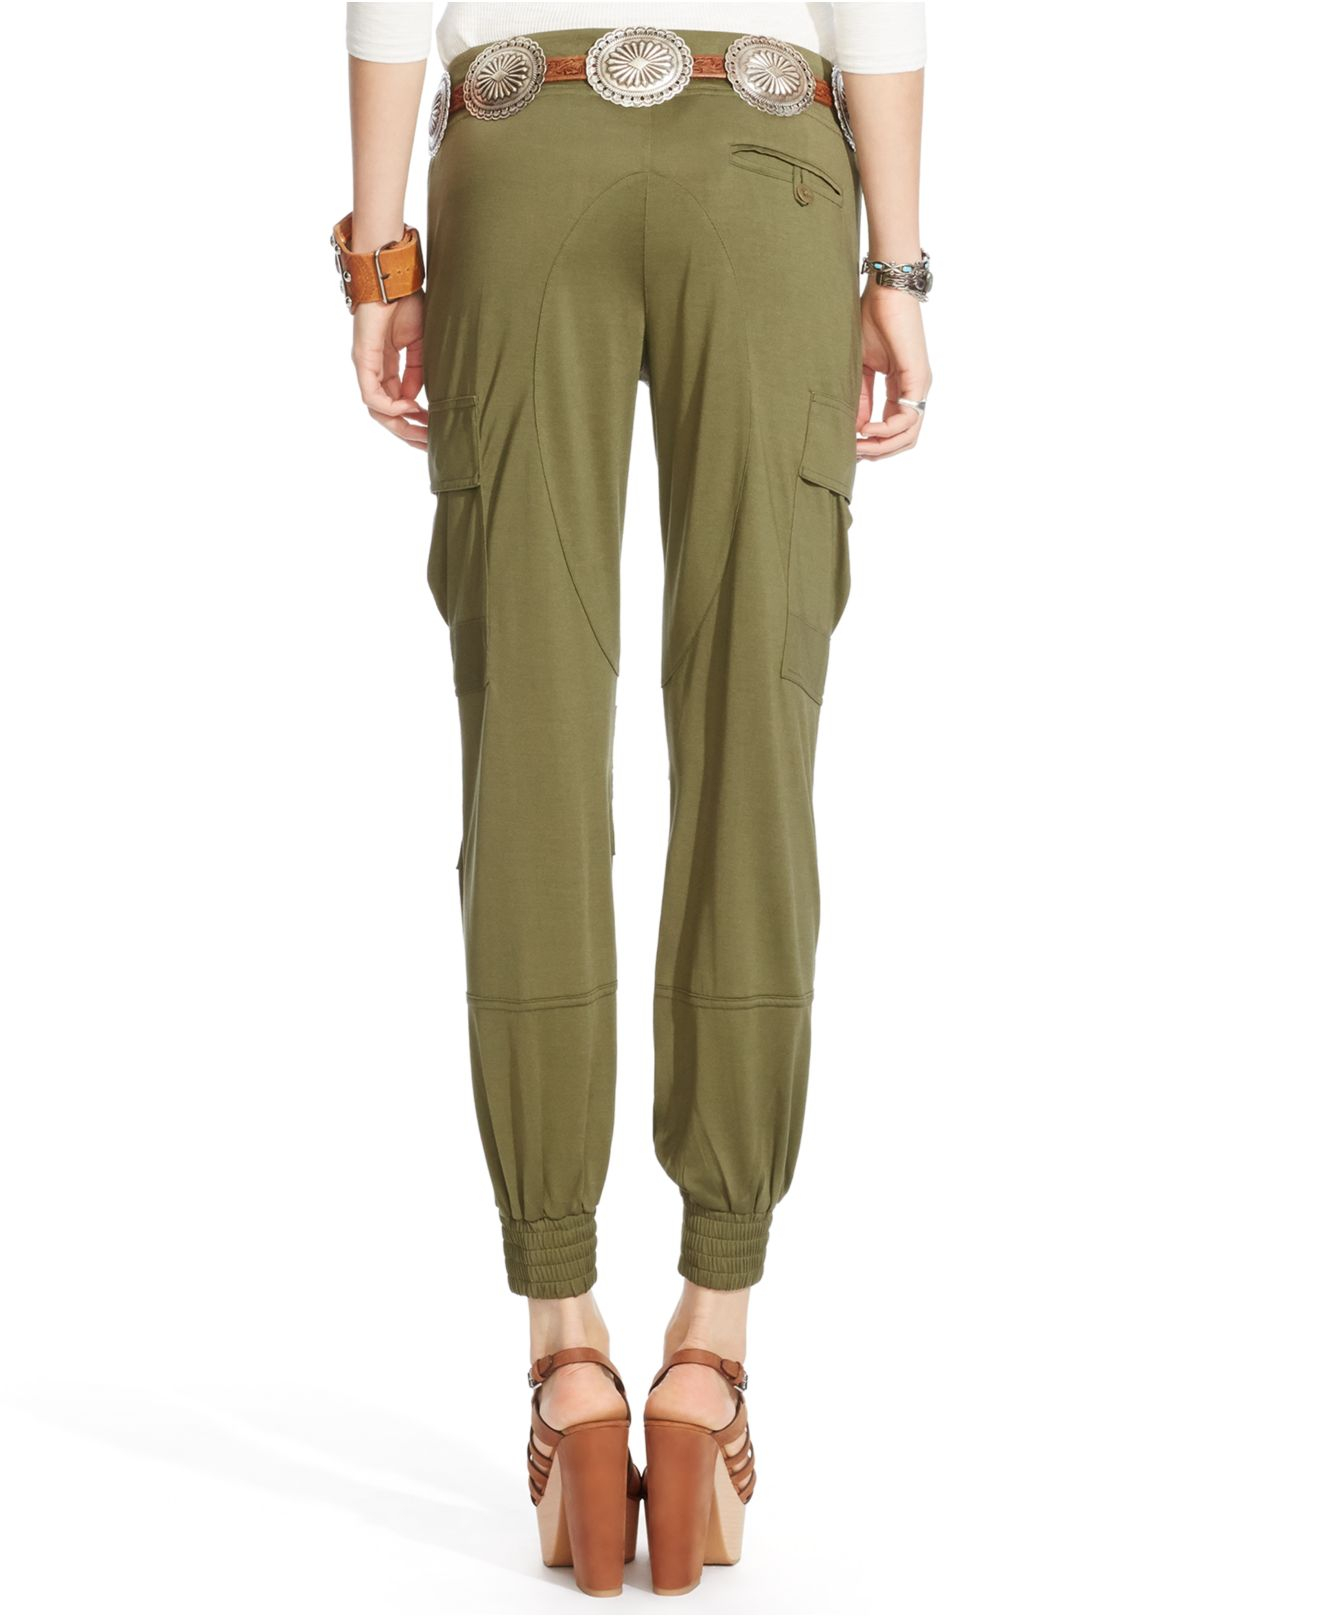 Polo ralph lauren Silk Military Cargo Pants in Green